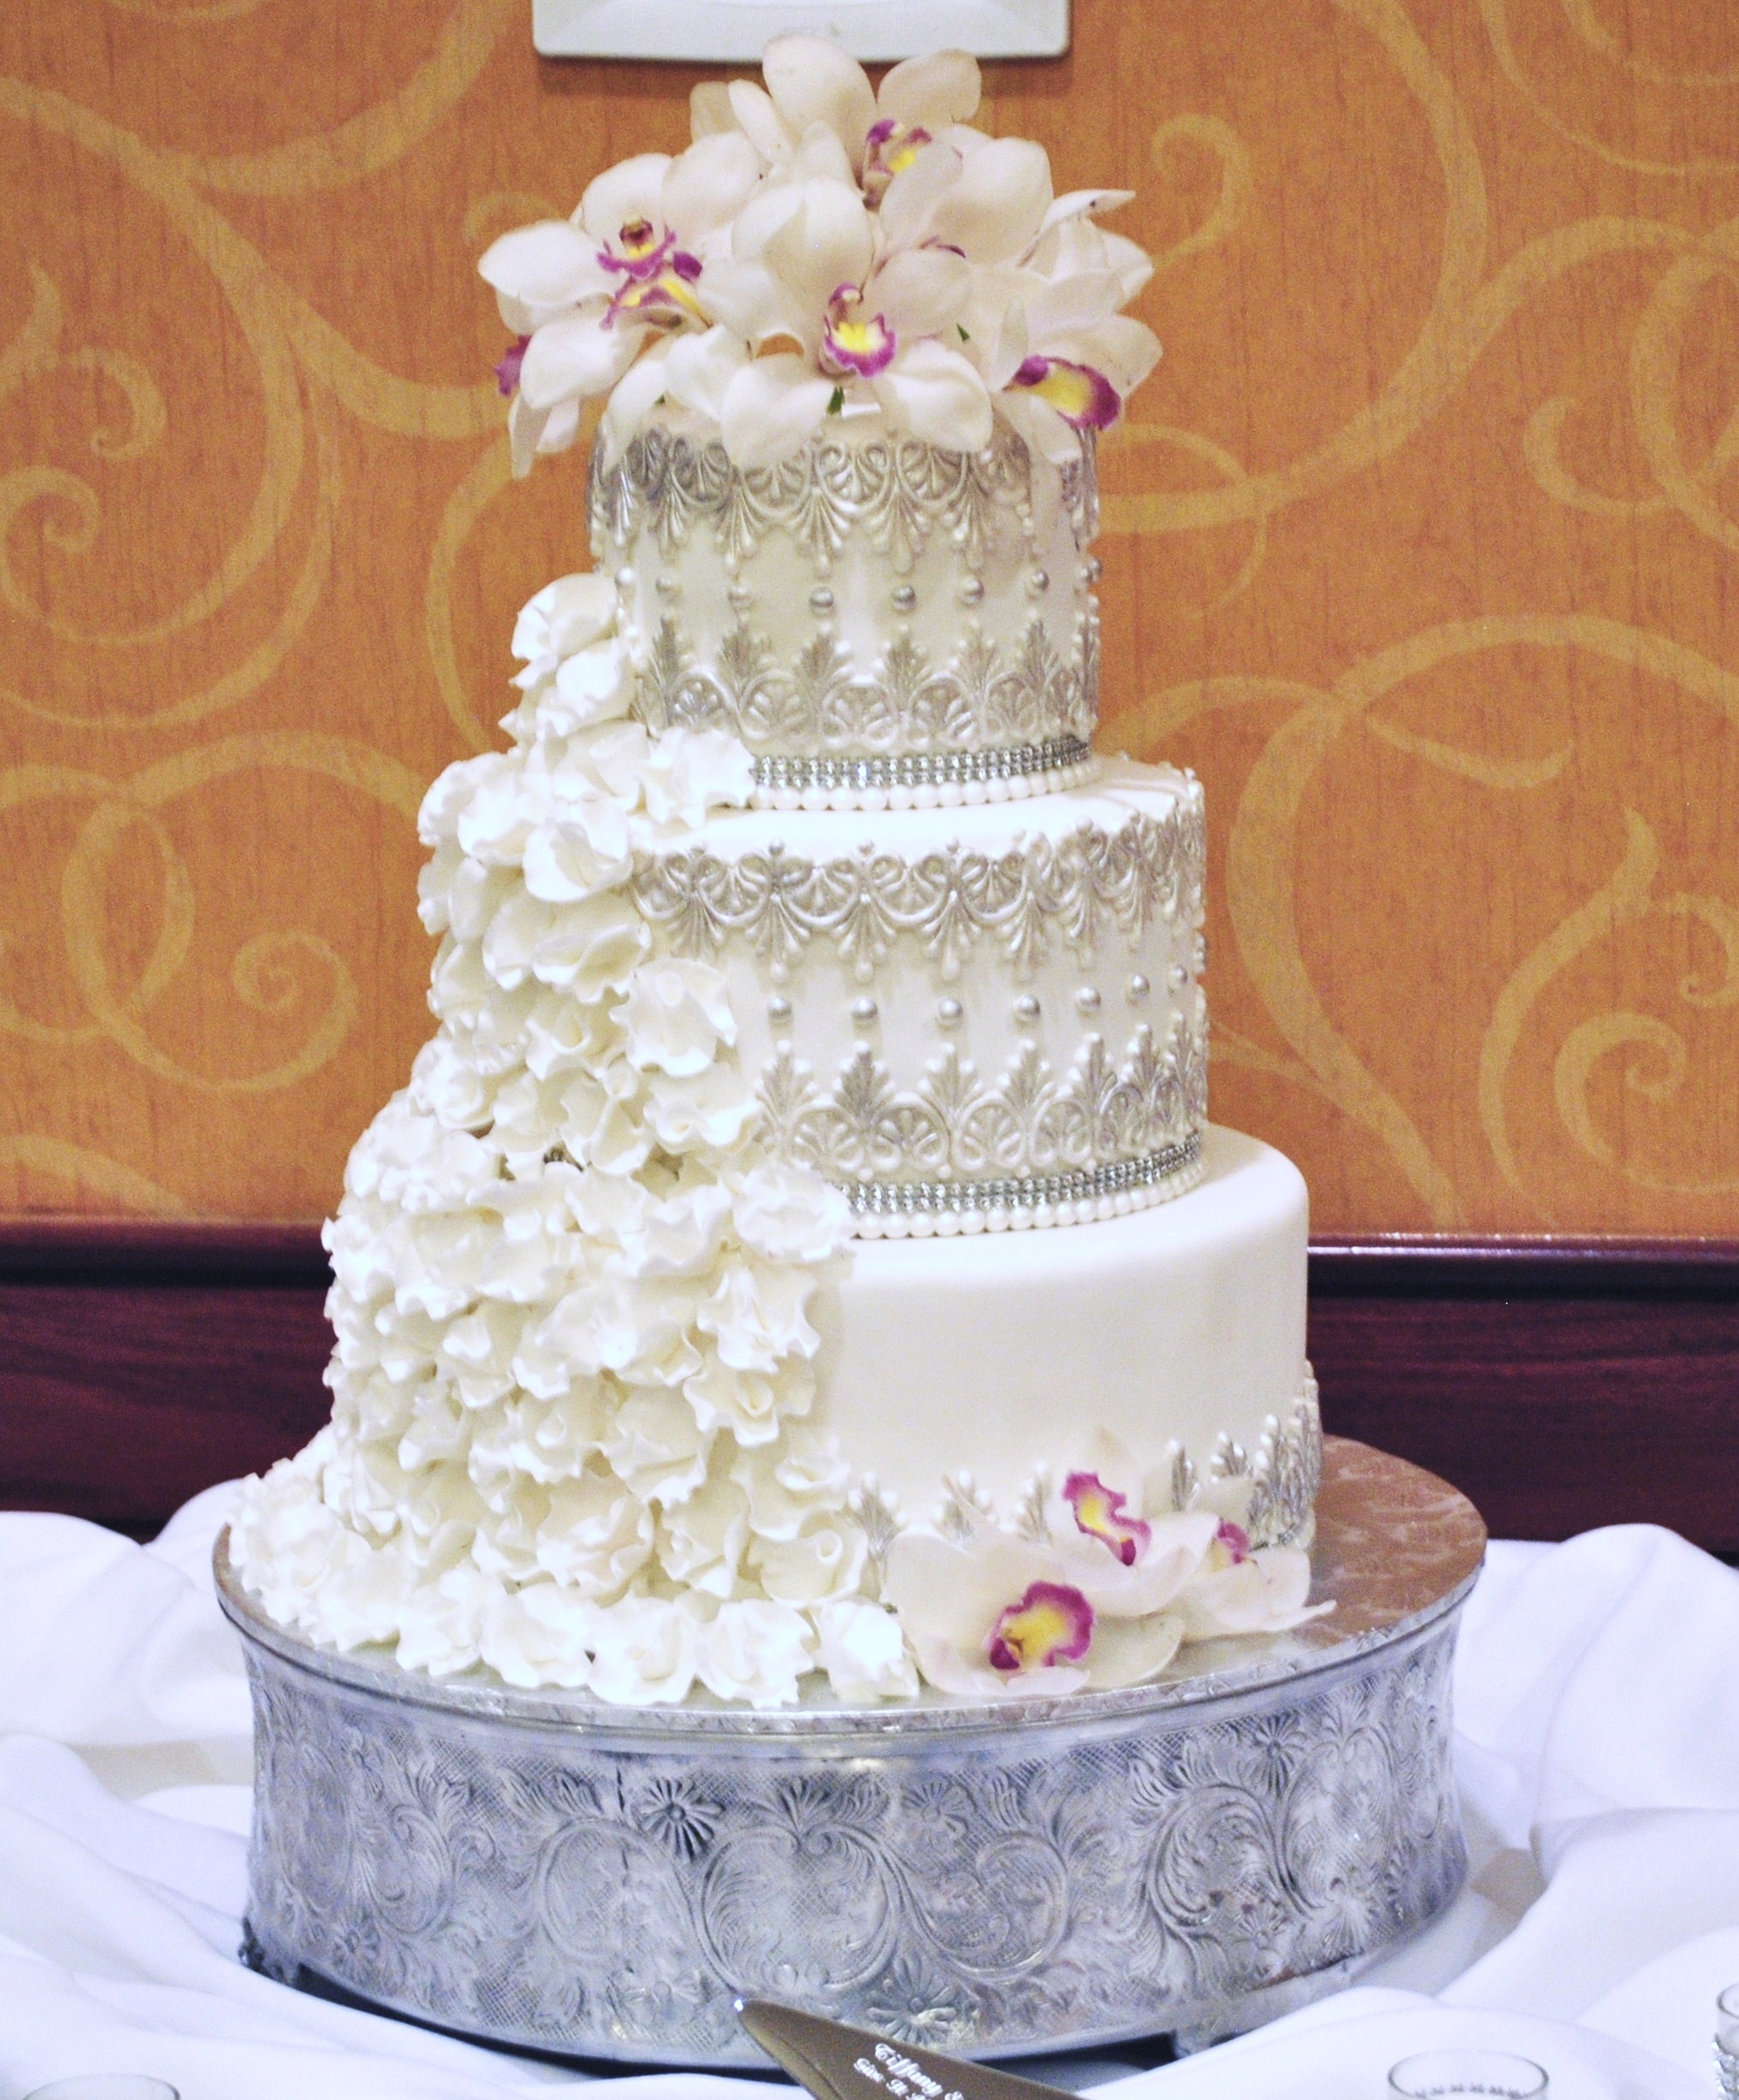 Gumpaste Flowers For Wedding Cakes: Extraordinary 5 Tier Wedding Cake With Fantasy Ruffled Gum